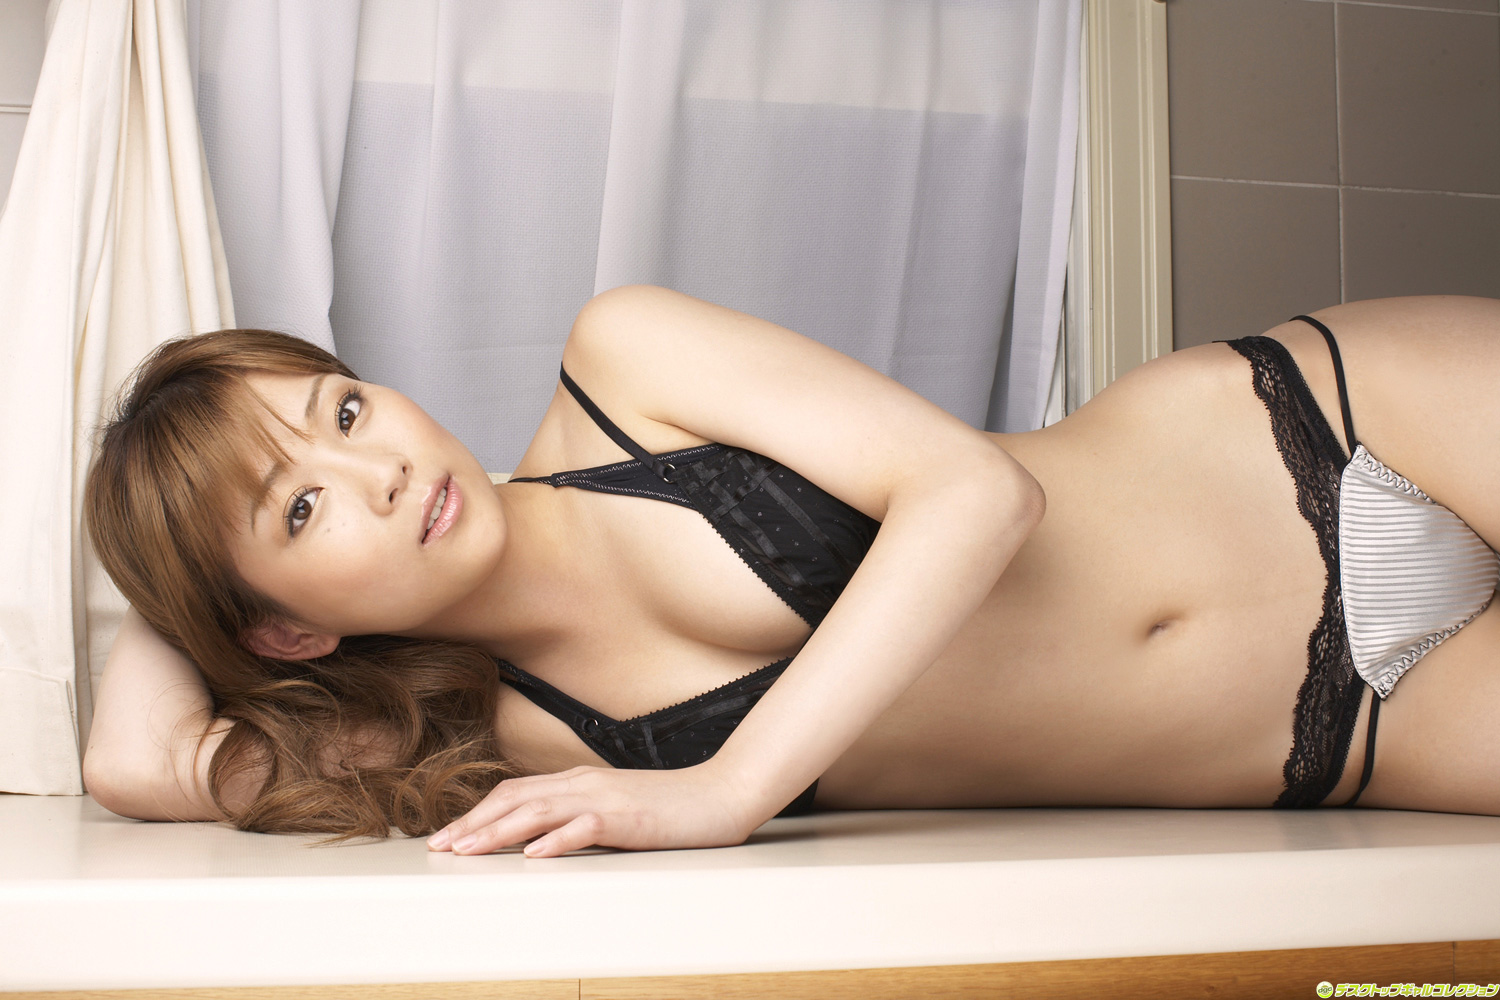 Aoi in the kitchen sink her big tits oiled up and squeezed b 6